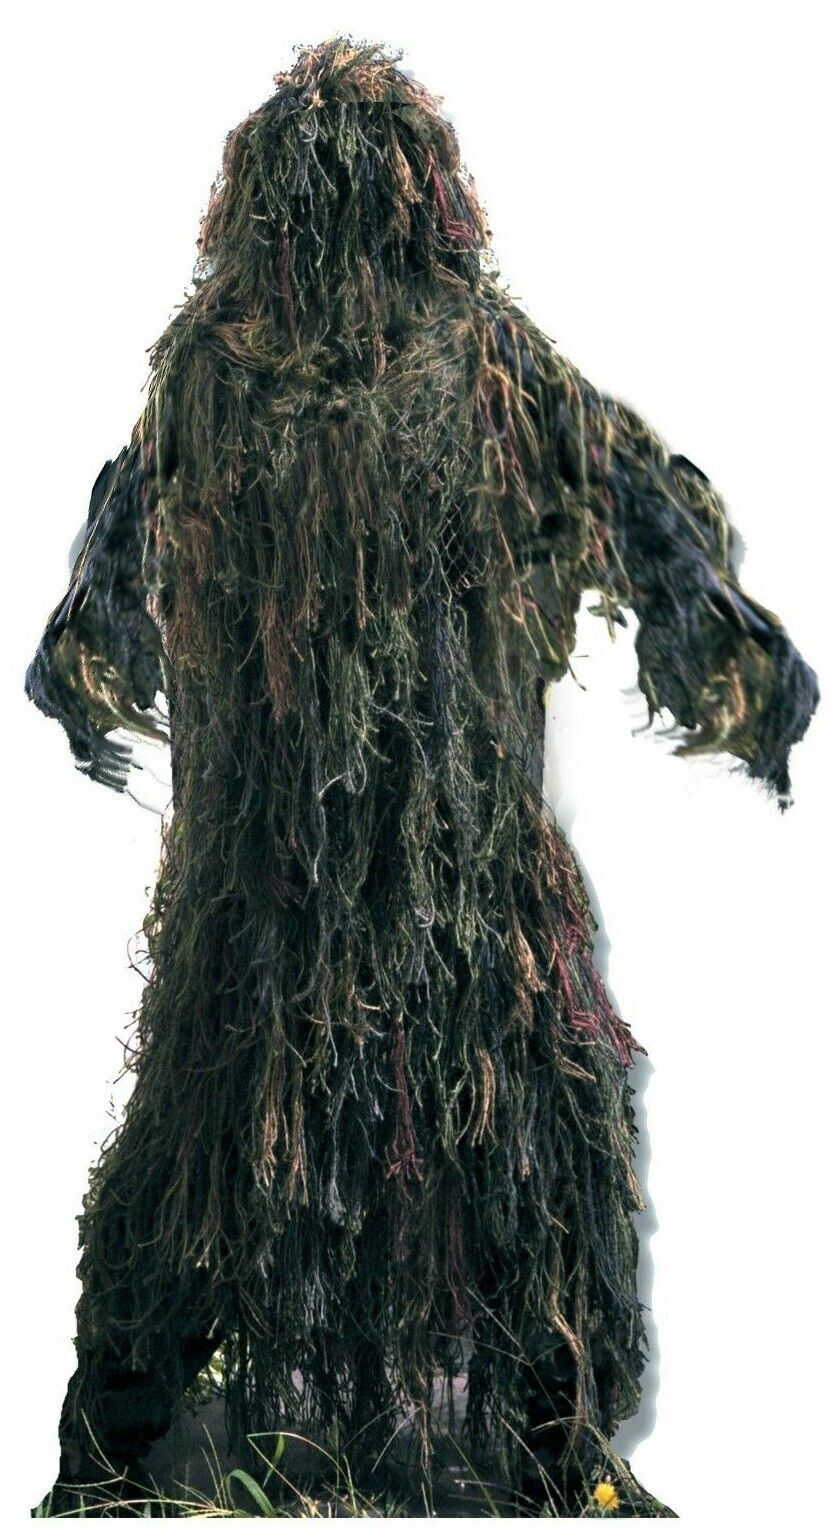 Ghillie suit youth sizes kids lightweight all purpose redhco 64128